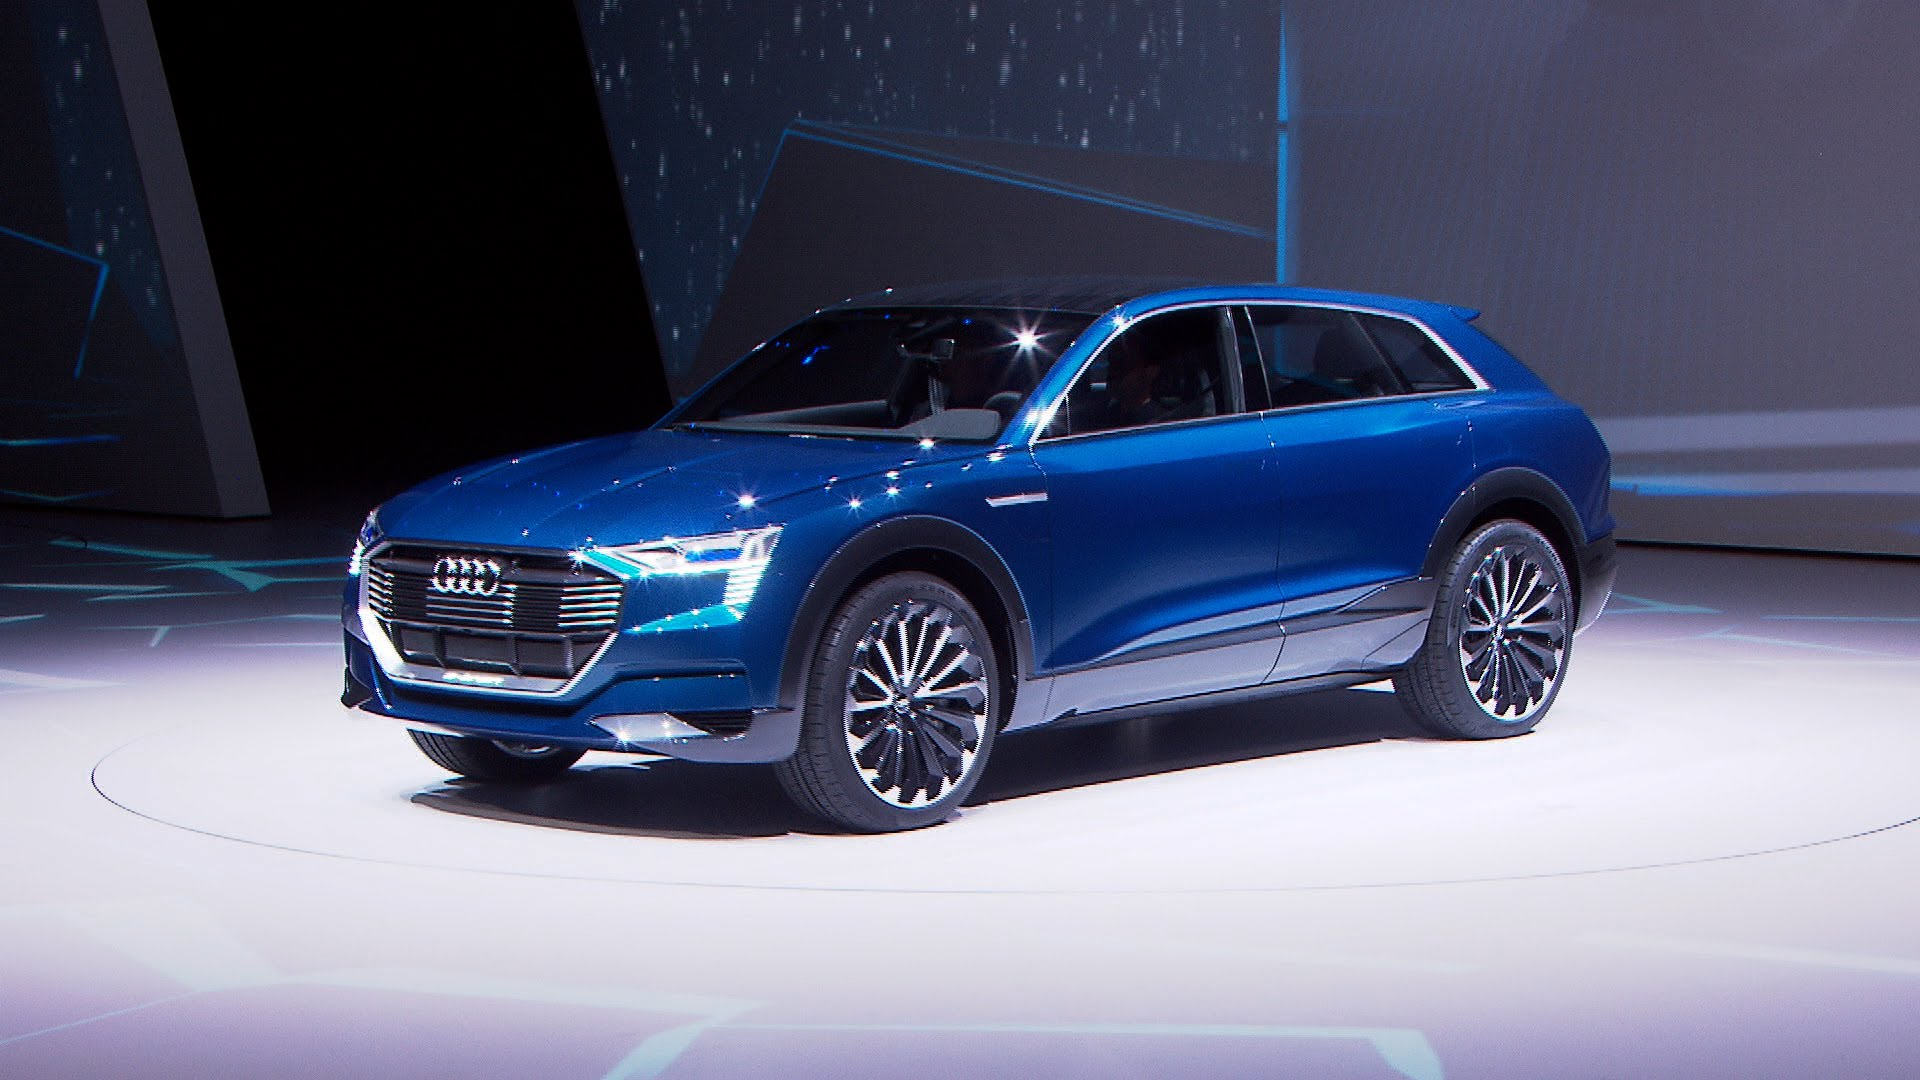 audi q6 e tron quattro 2018 hd wallpapers free download. Black Bedroom Furniture Sets. Home Design Ideas